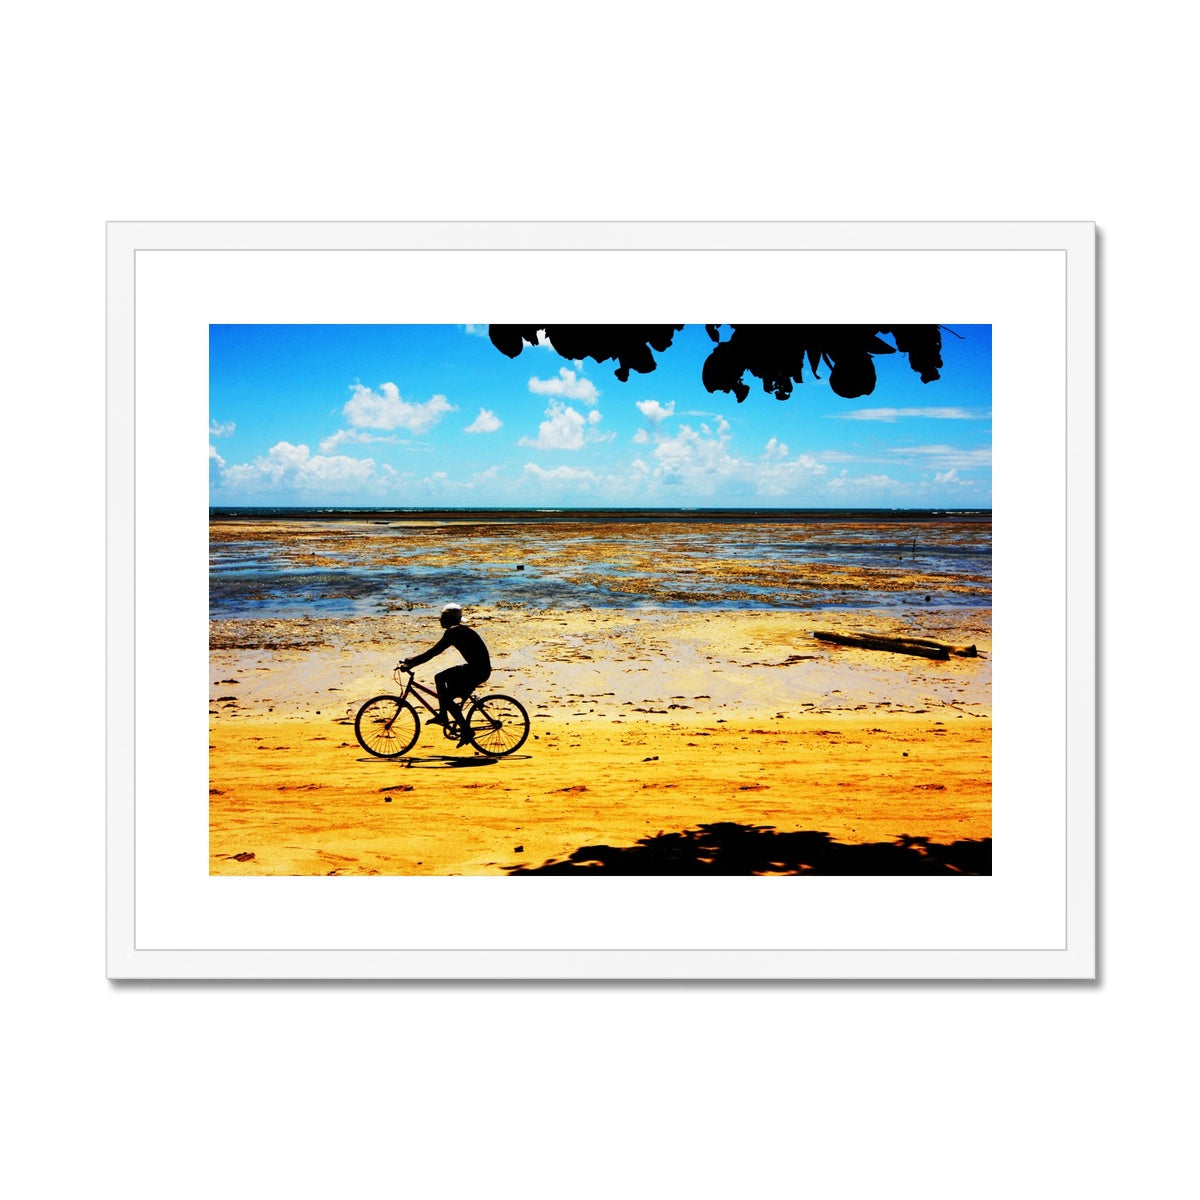 Bahia Bicyle Dreams - Brasil Framed & Mounted Print